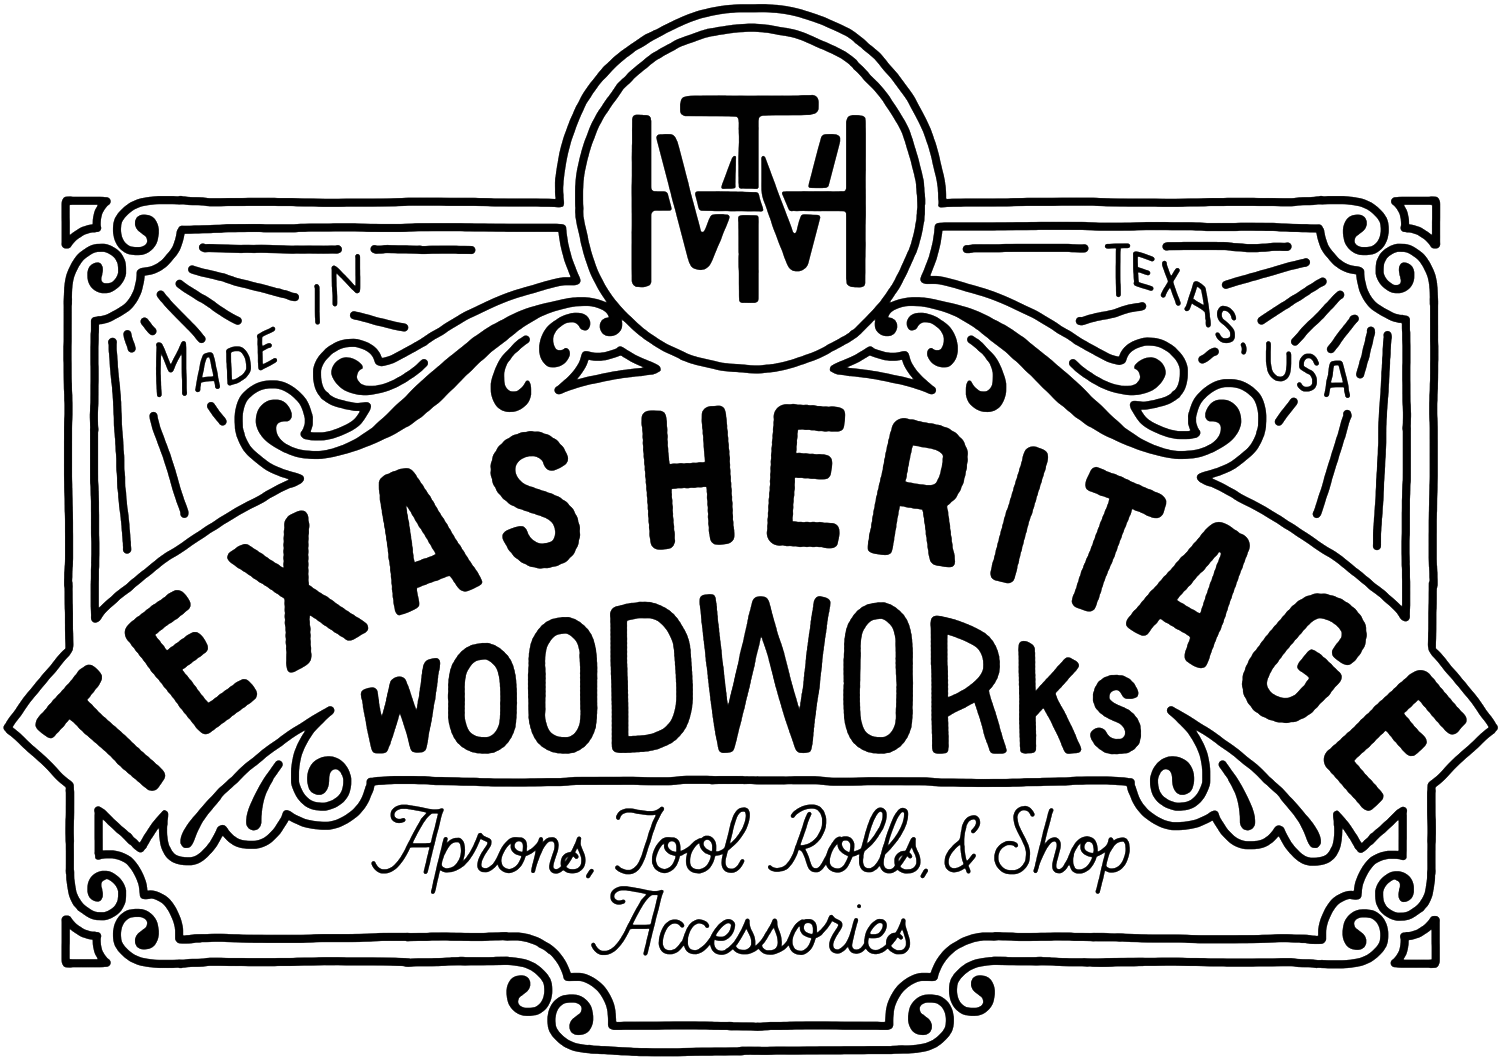 Texas Heritage Woodworks